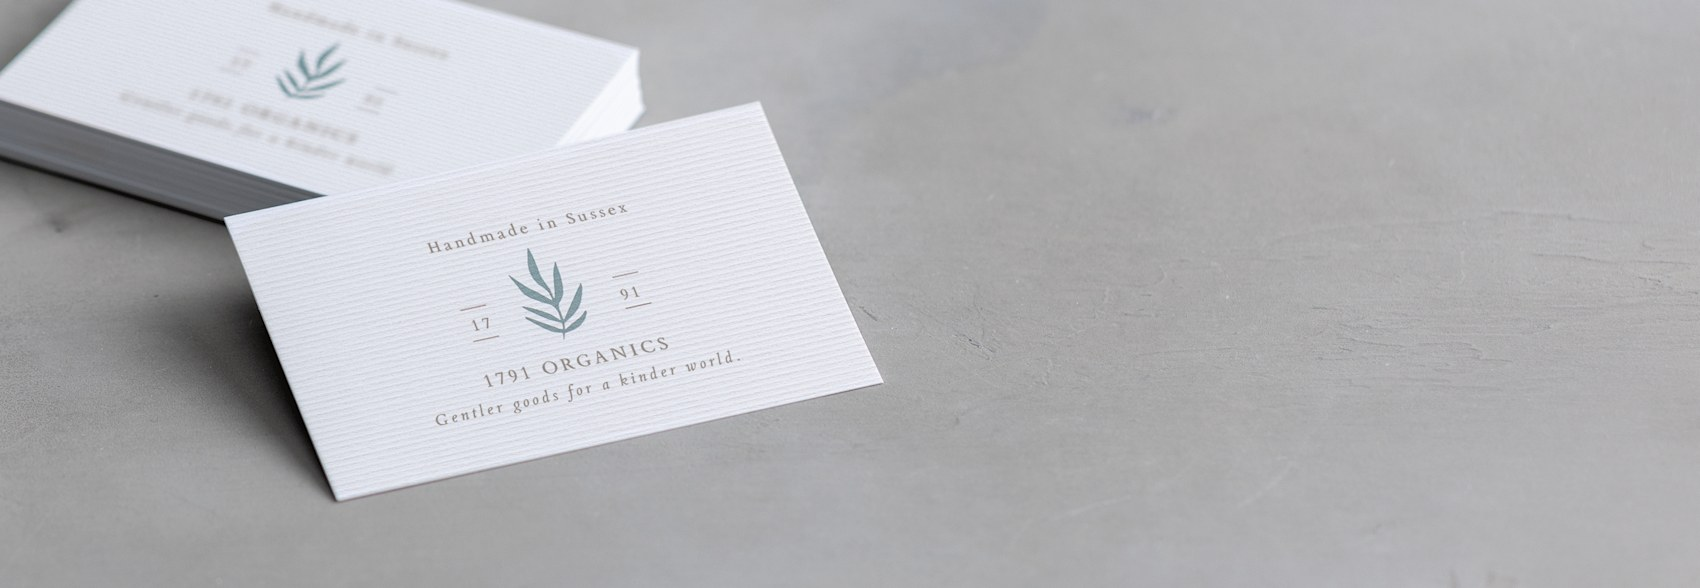 Corrugated business cards